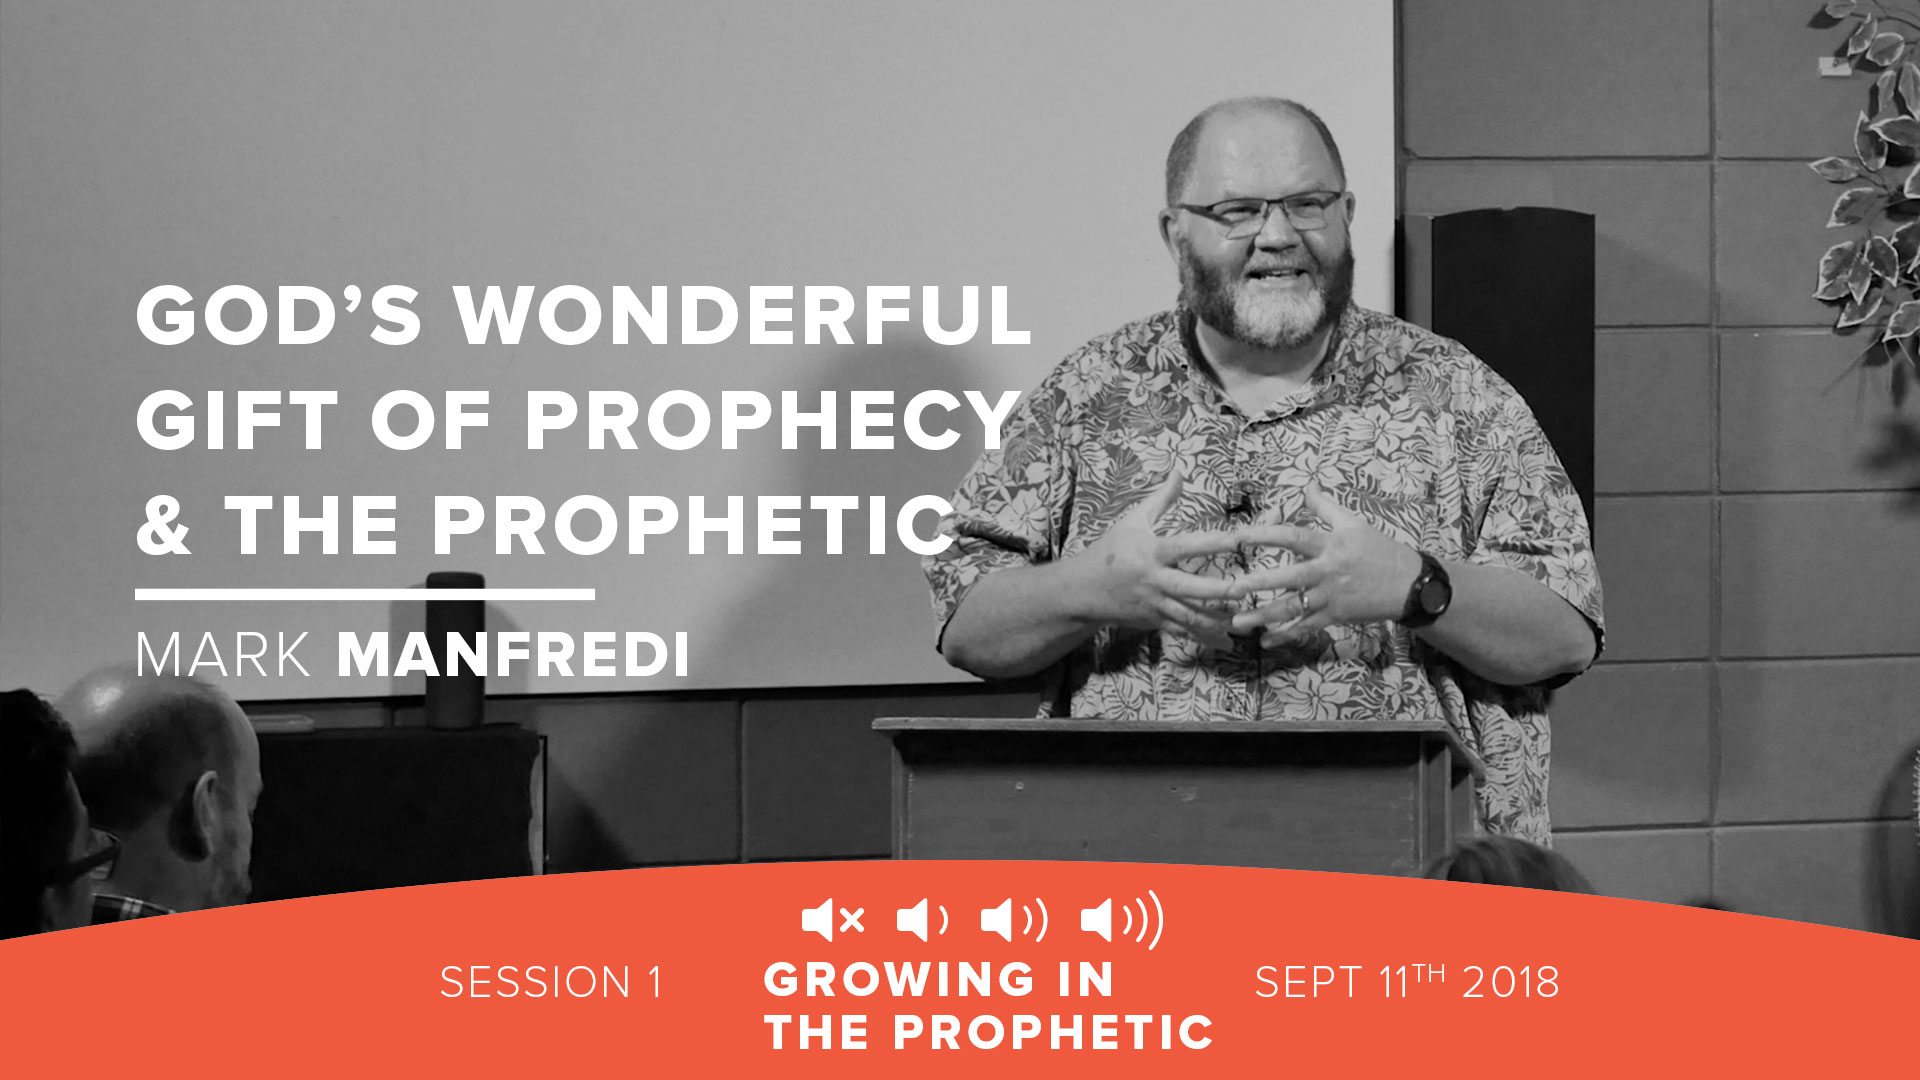 God's Wonderful Gift of Prophecy and the Prophetic